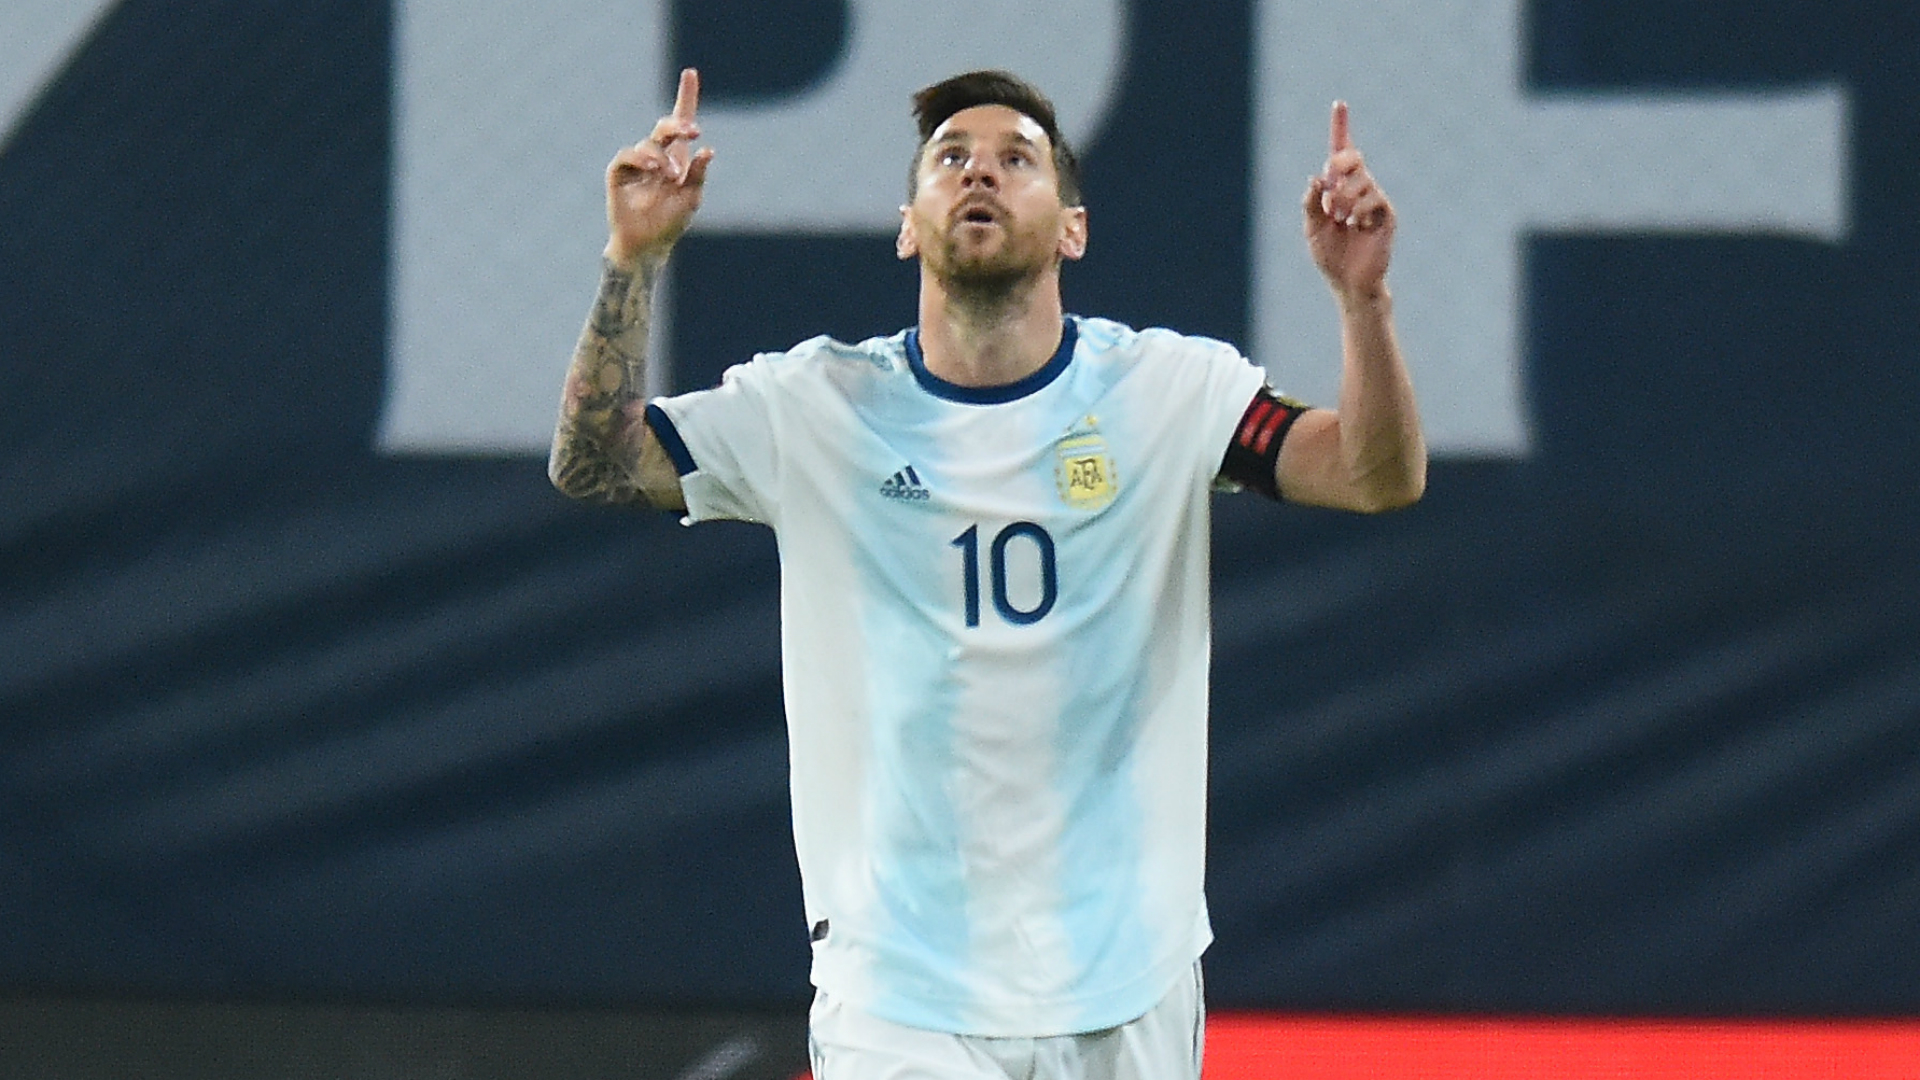 Messi hails importance of Argentina win after international absence